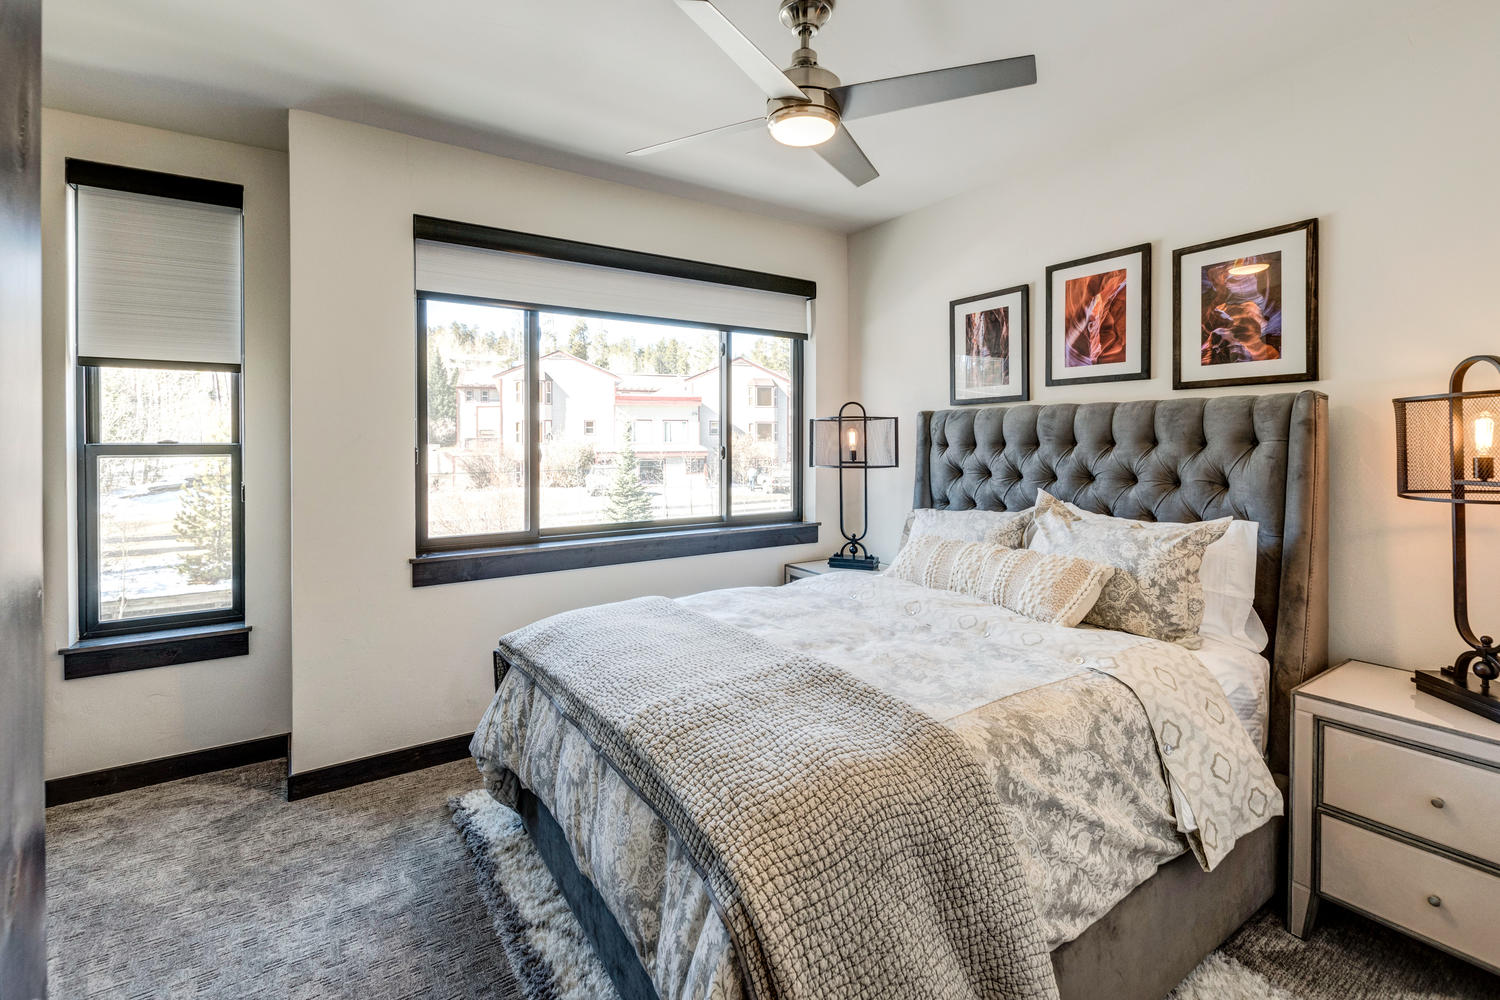 Master bedroom suite 2 with views